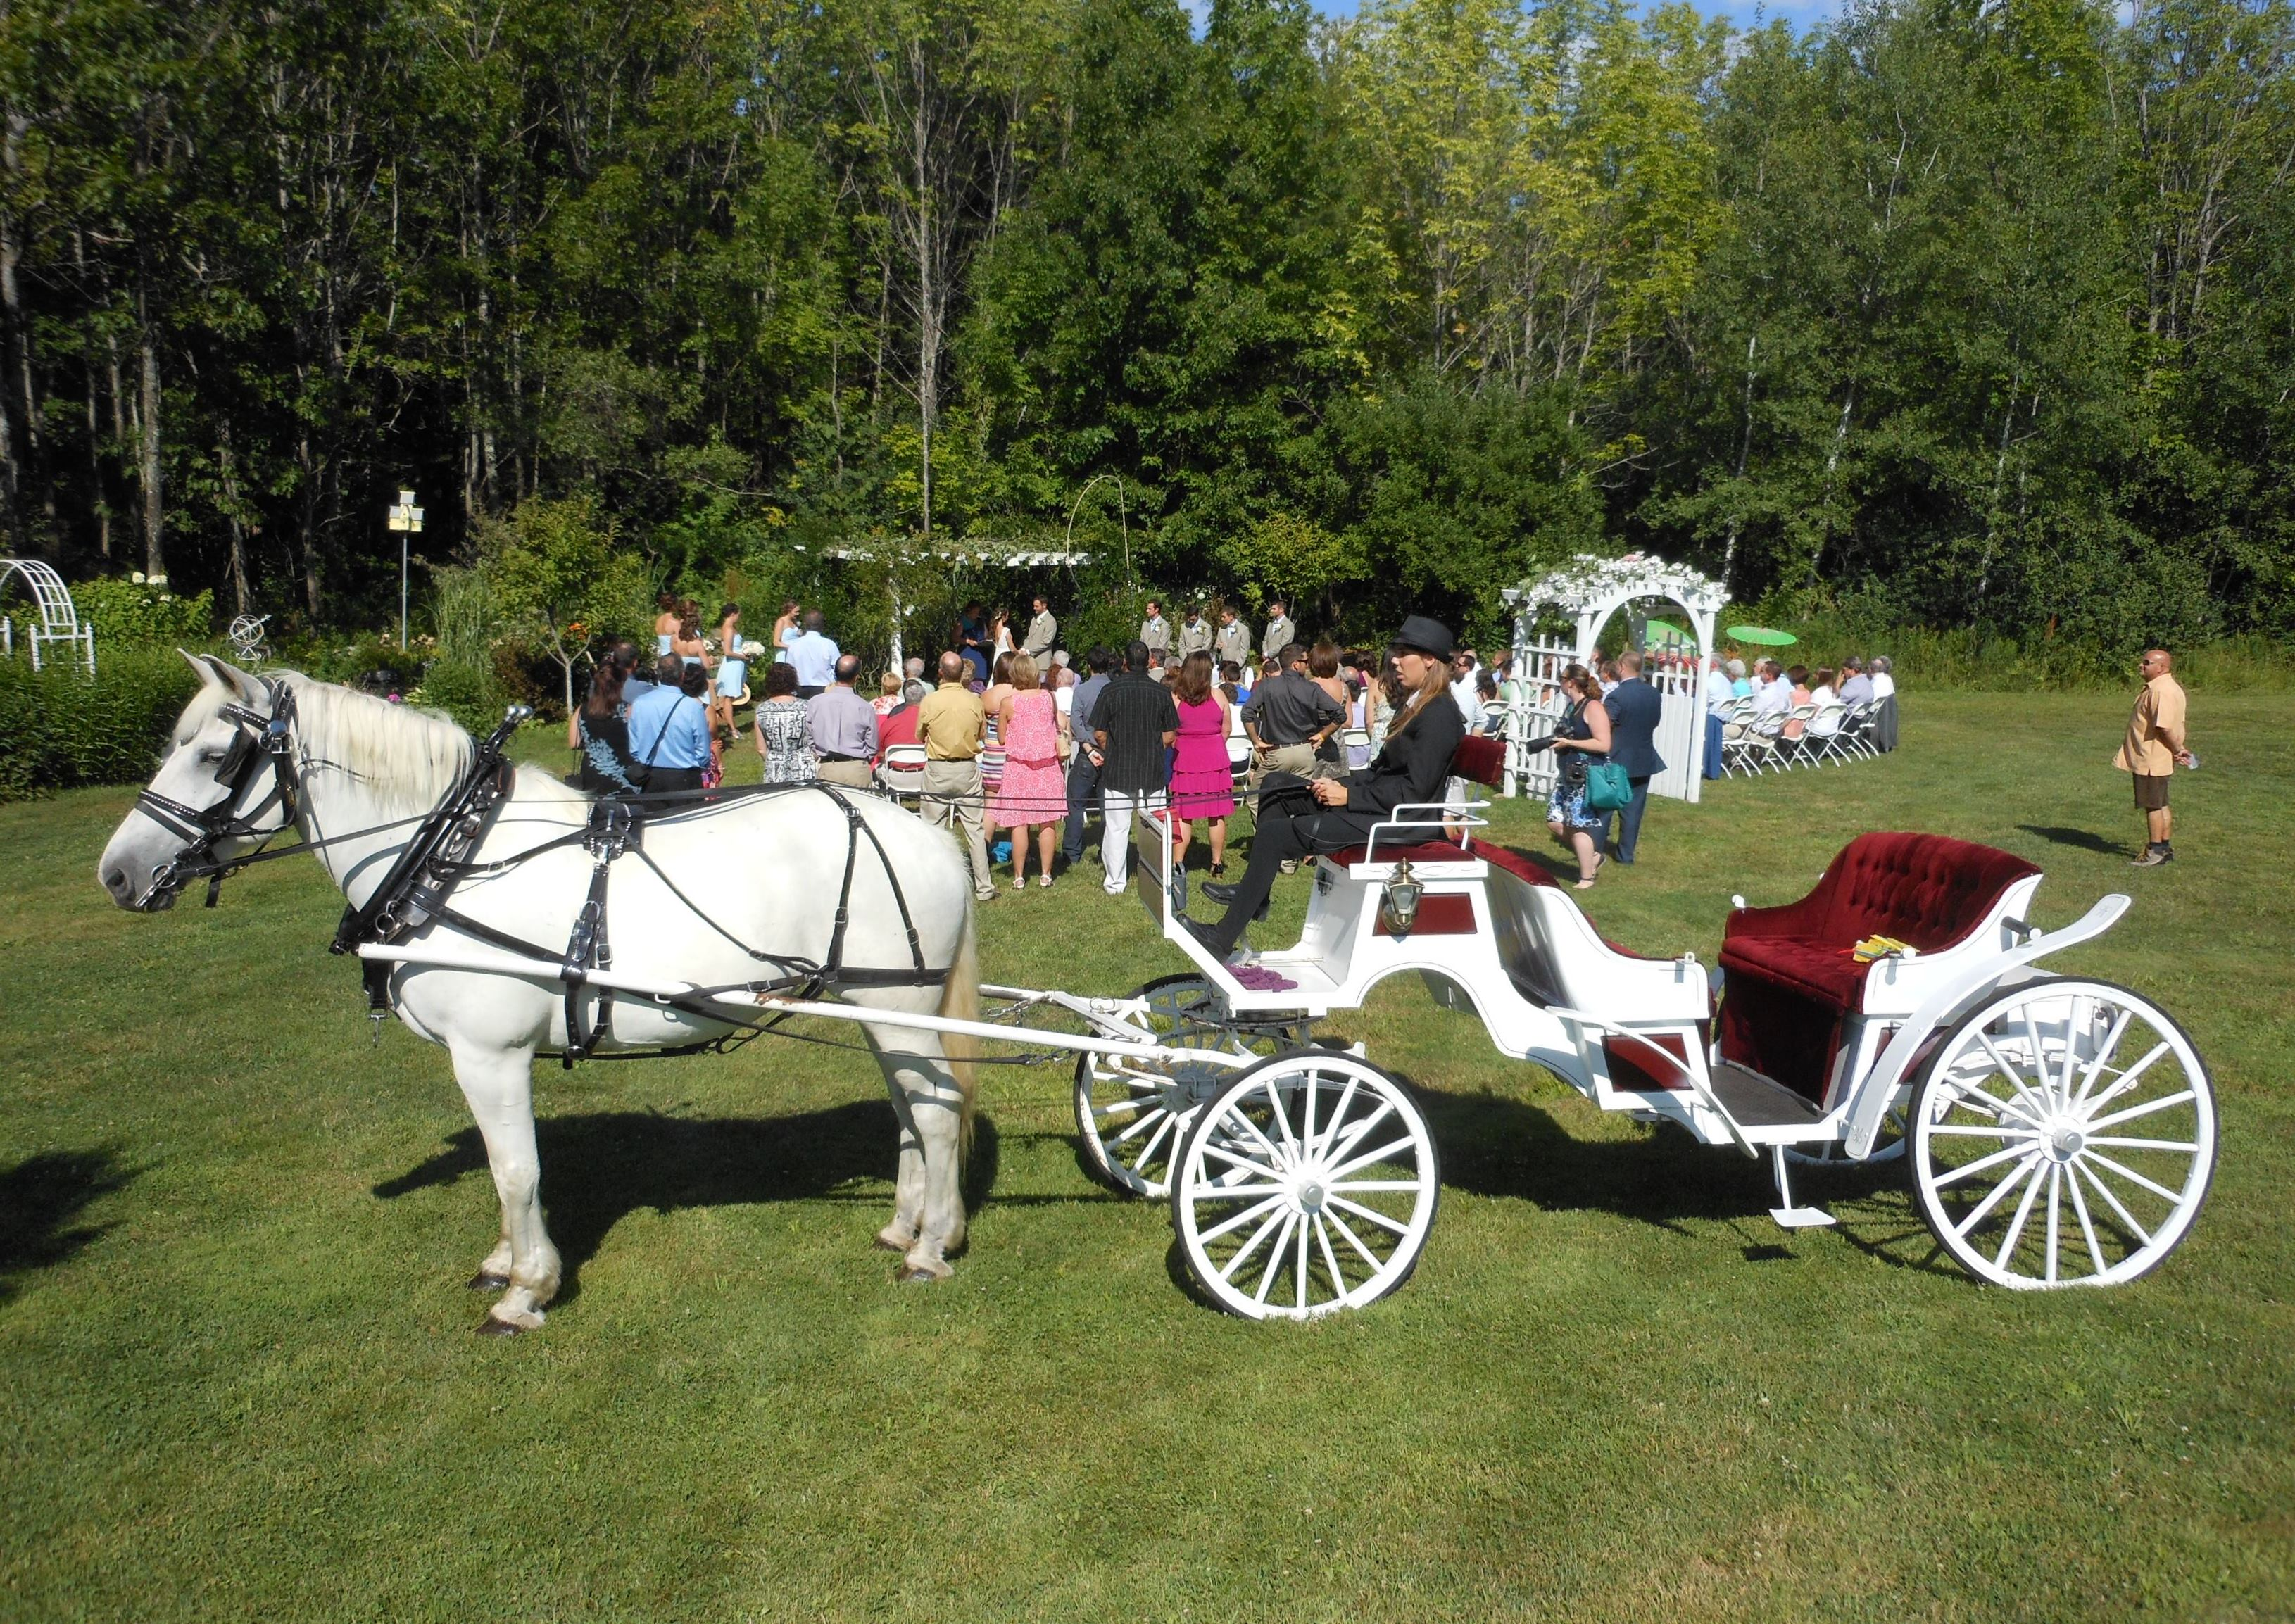 Carriages, Farm Wagons, Fancy Wagons